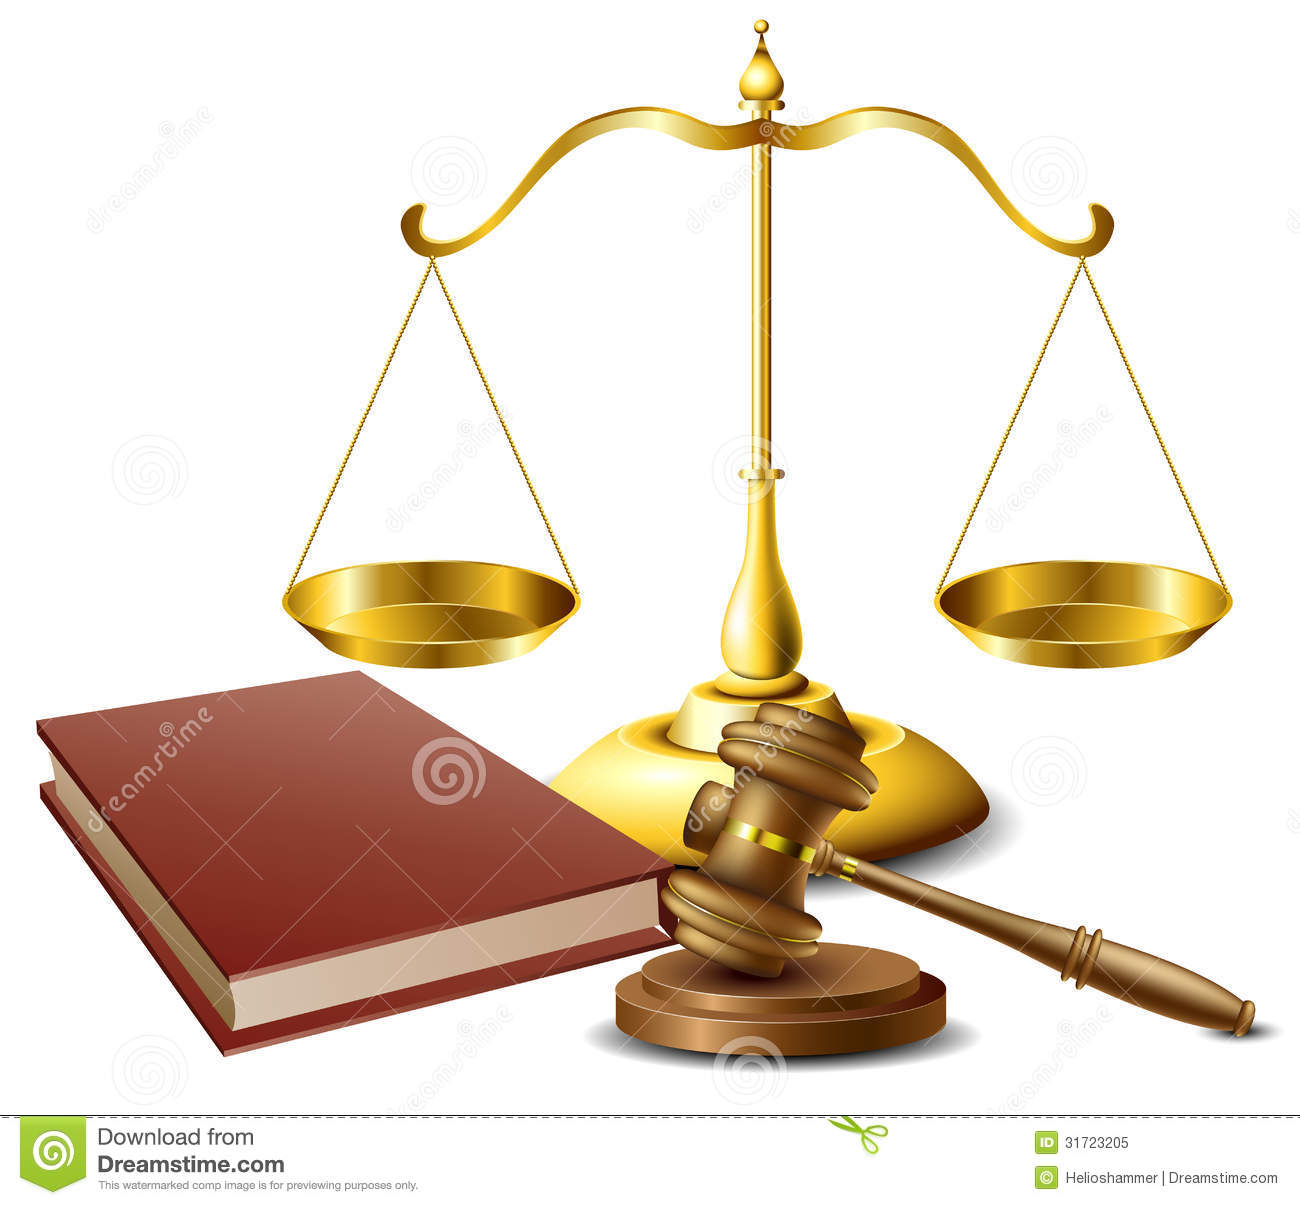 law scale and gavel - photo #7